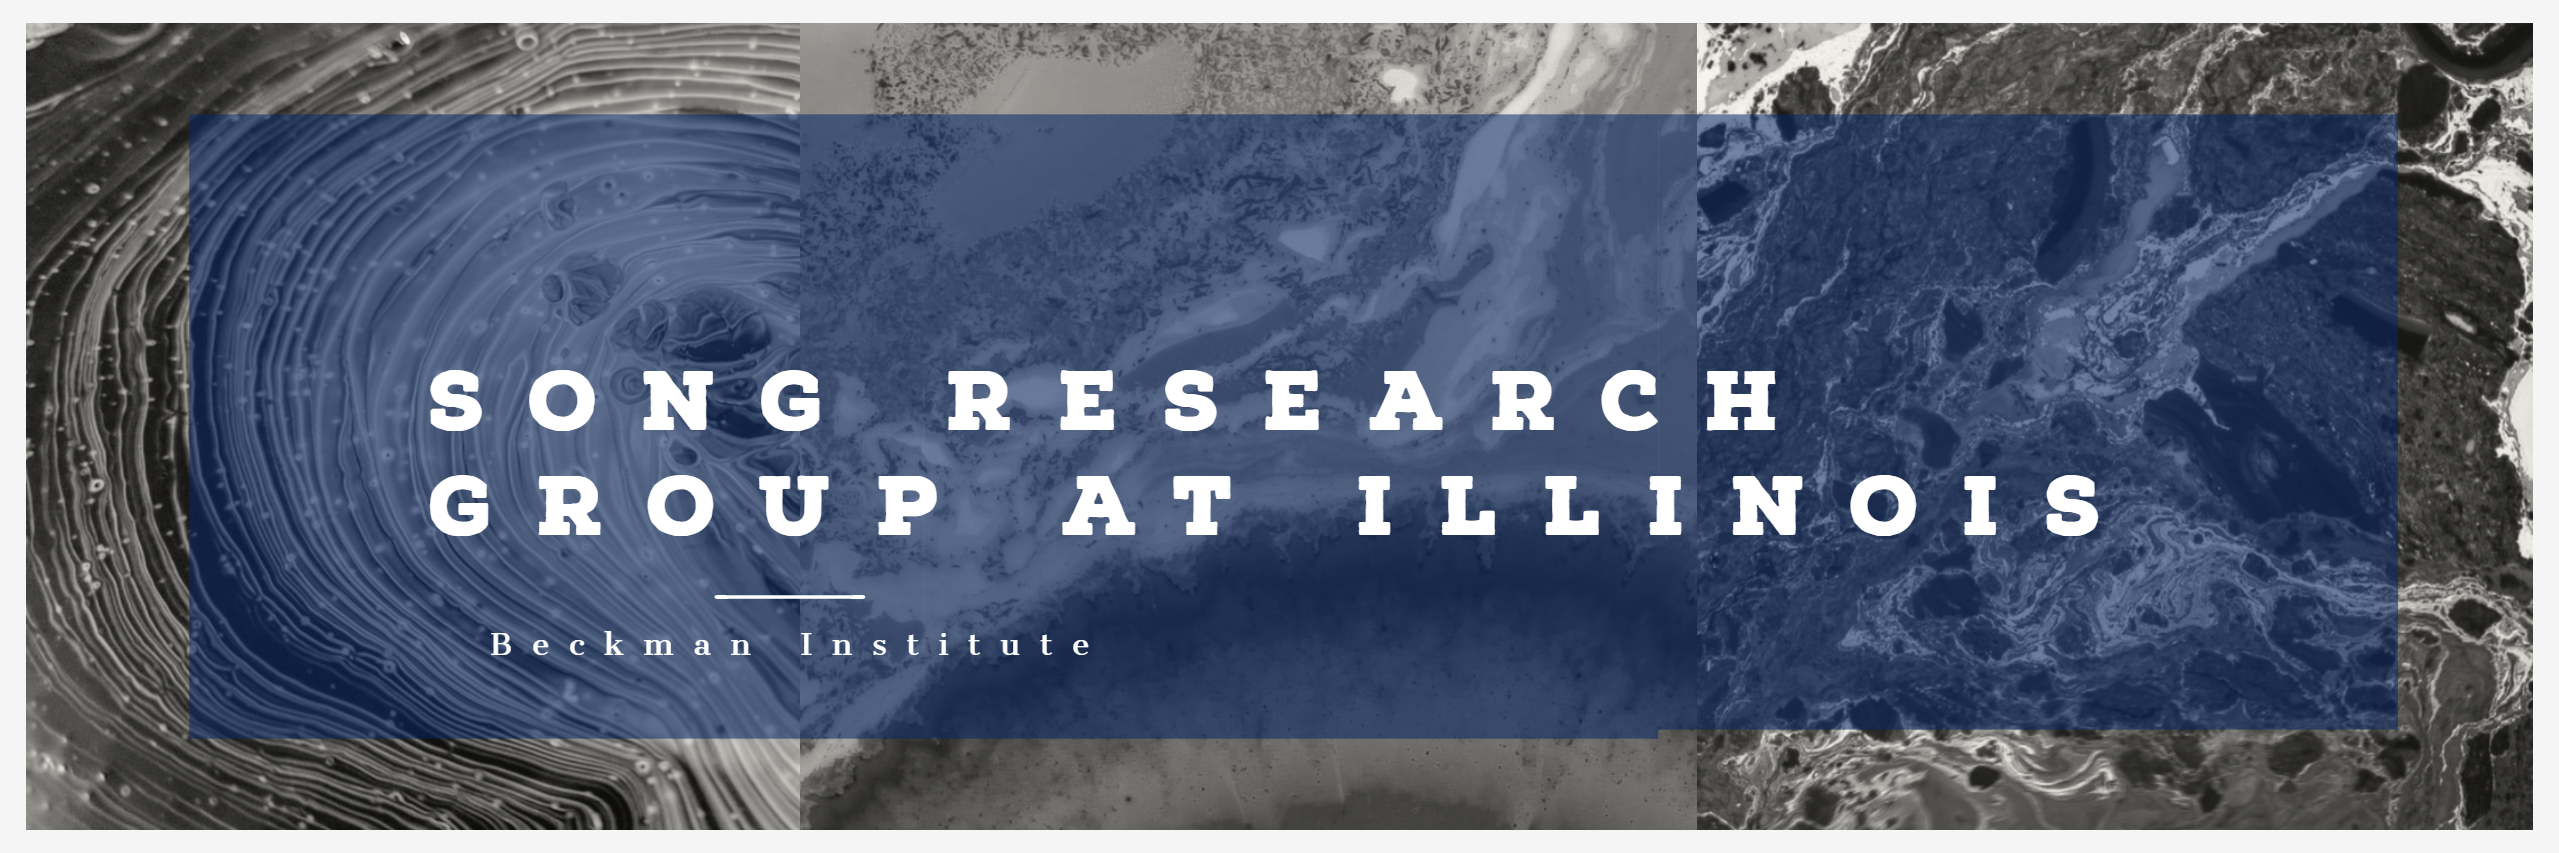 Song Research Group at Illinois